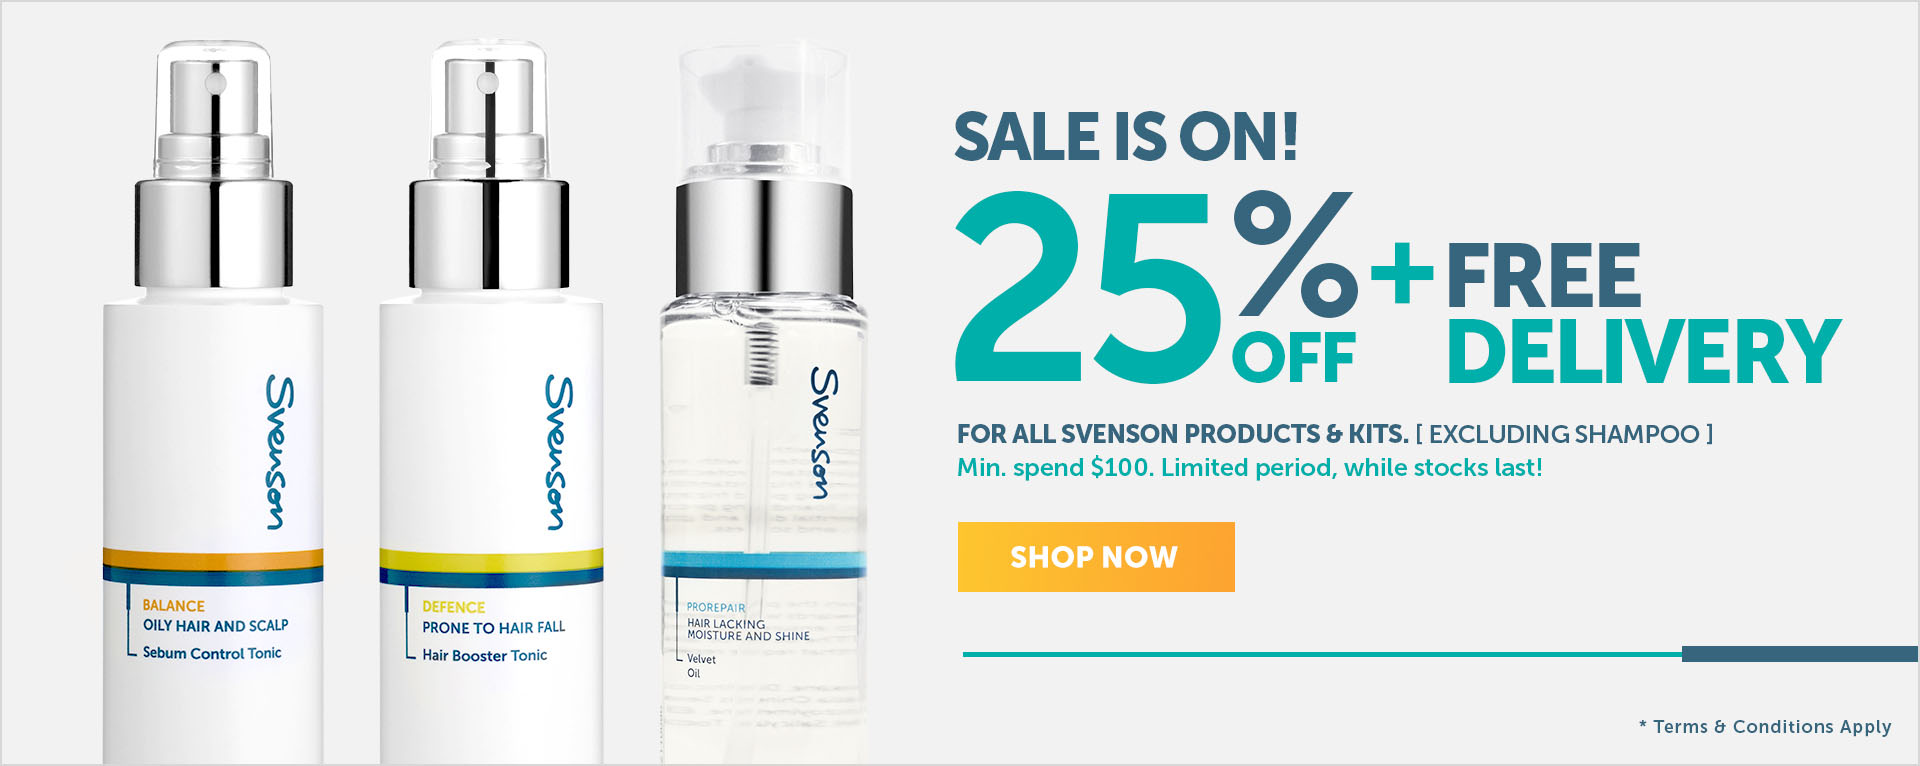 25% off SVN products and kits, excluding shampoo